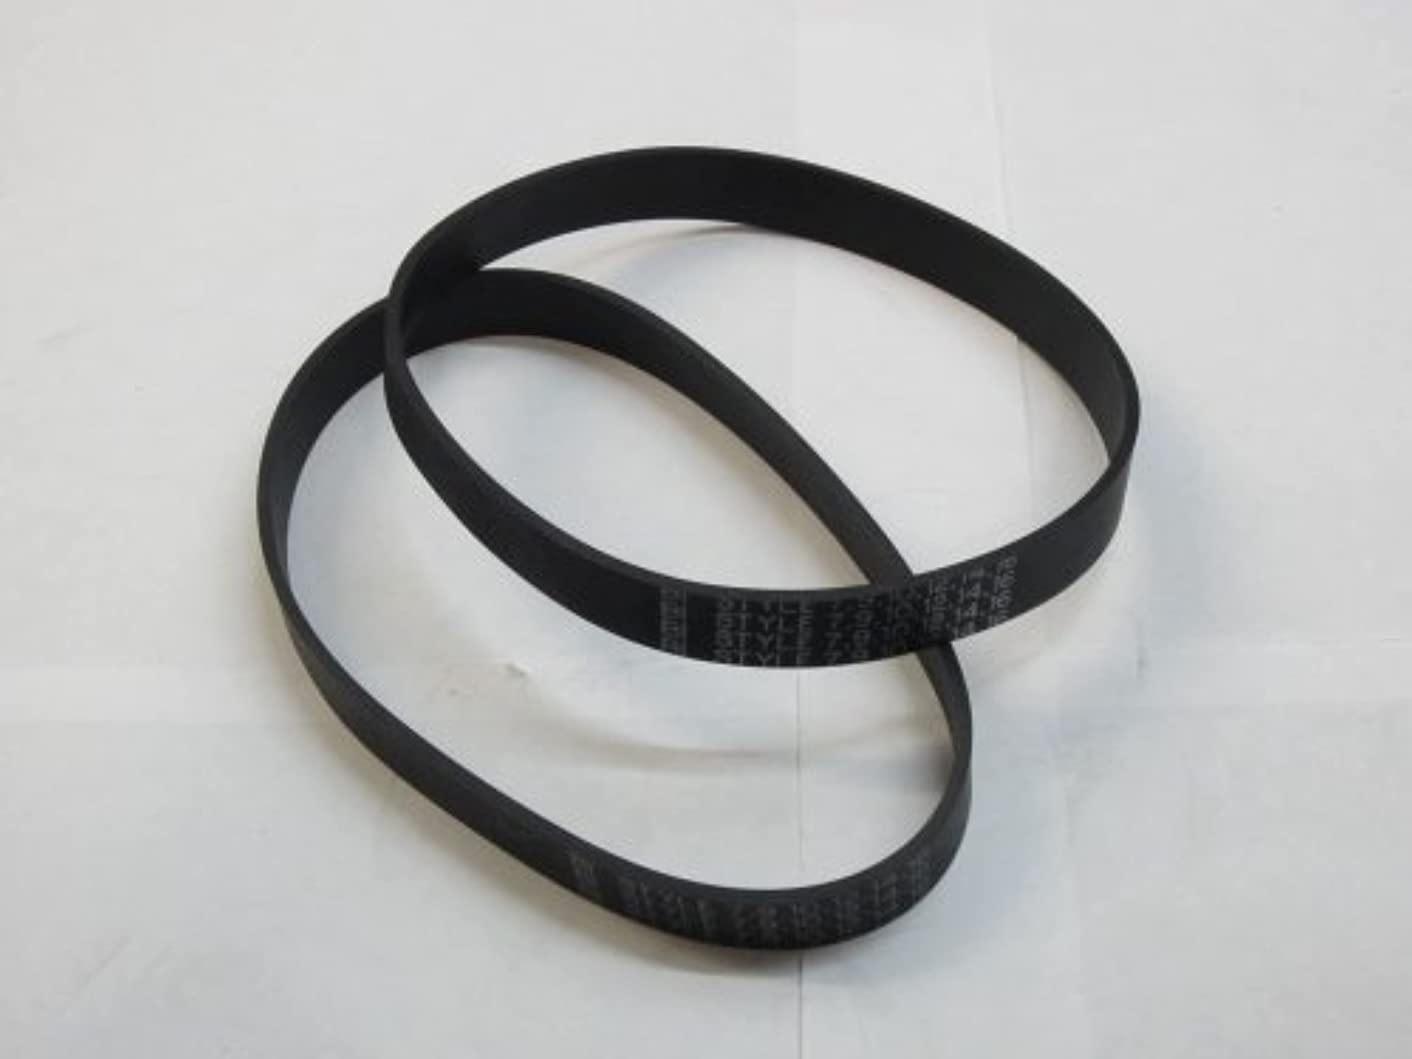 2 BISSELL ORIGINAL BELTS TO FIT 7, 9, 10, 12,14,16 VACUUMS